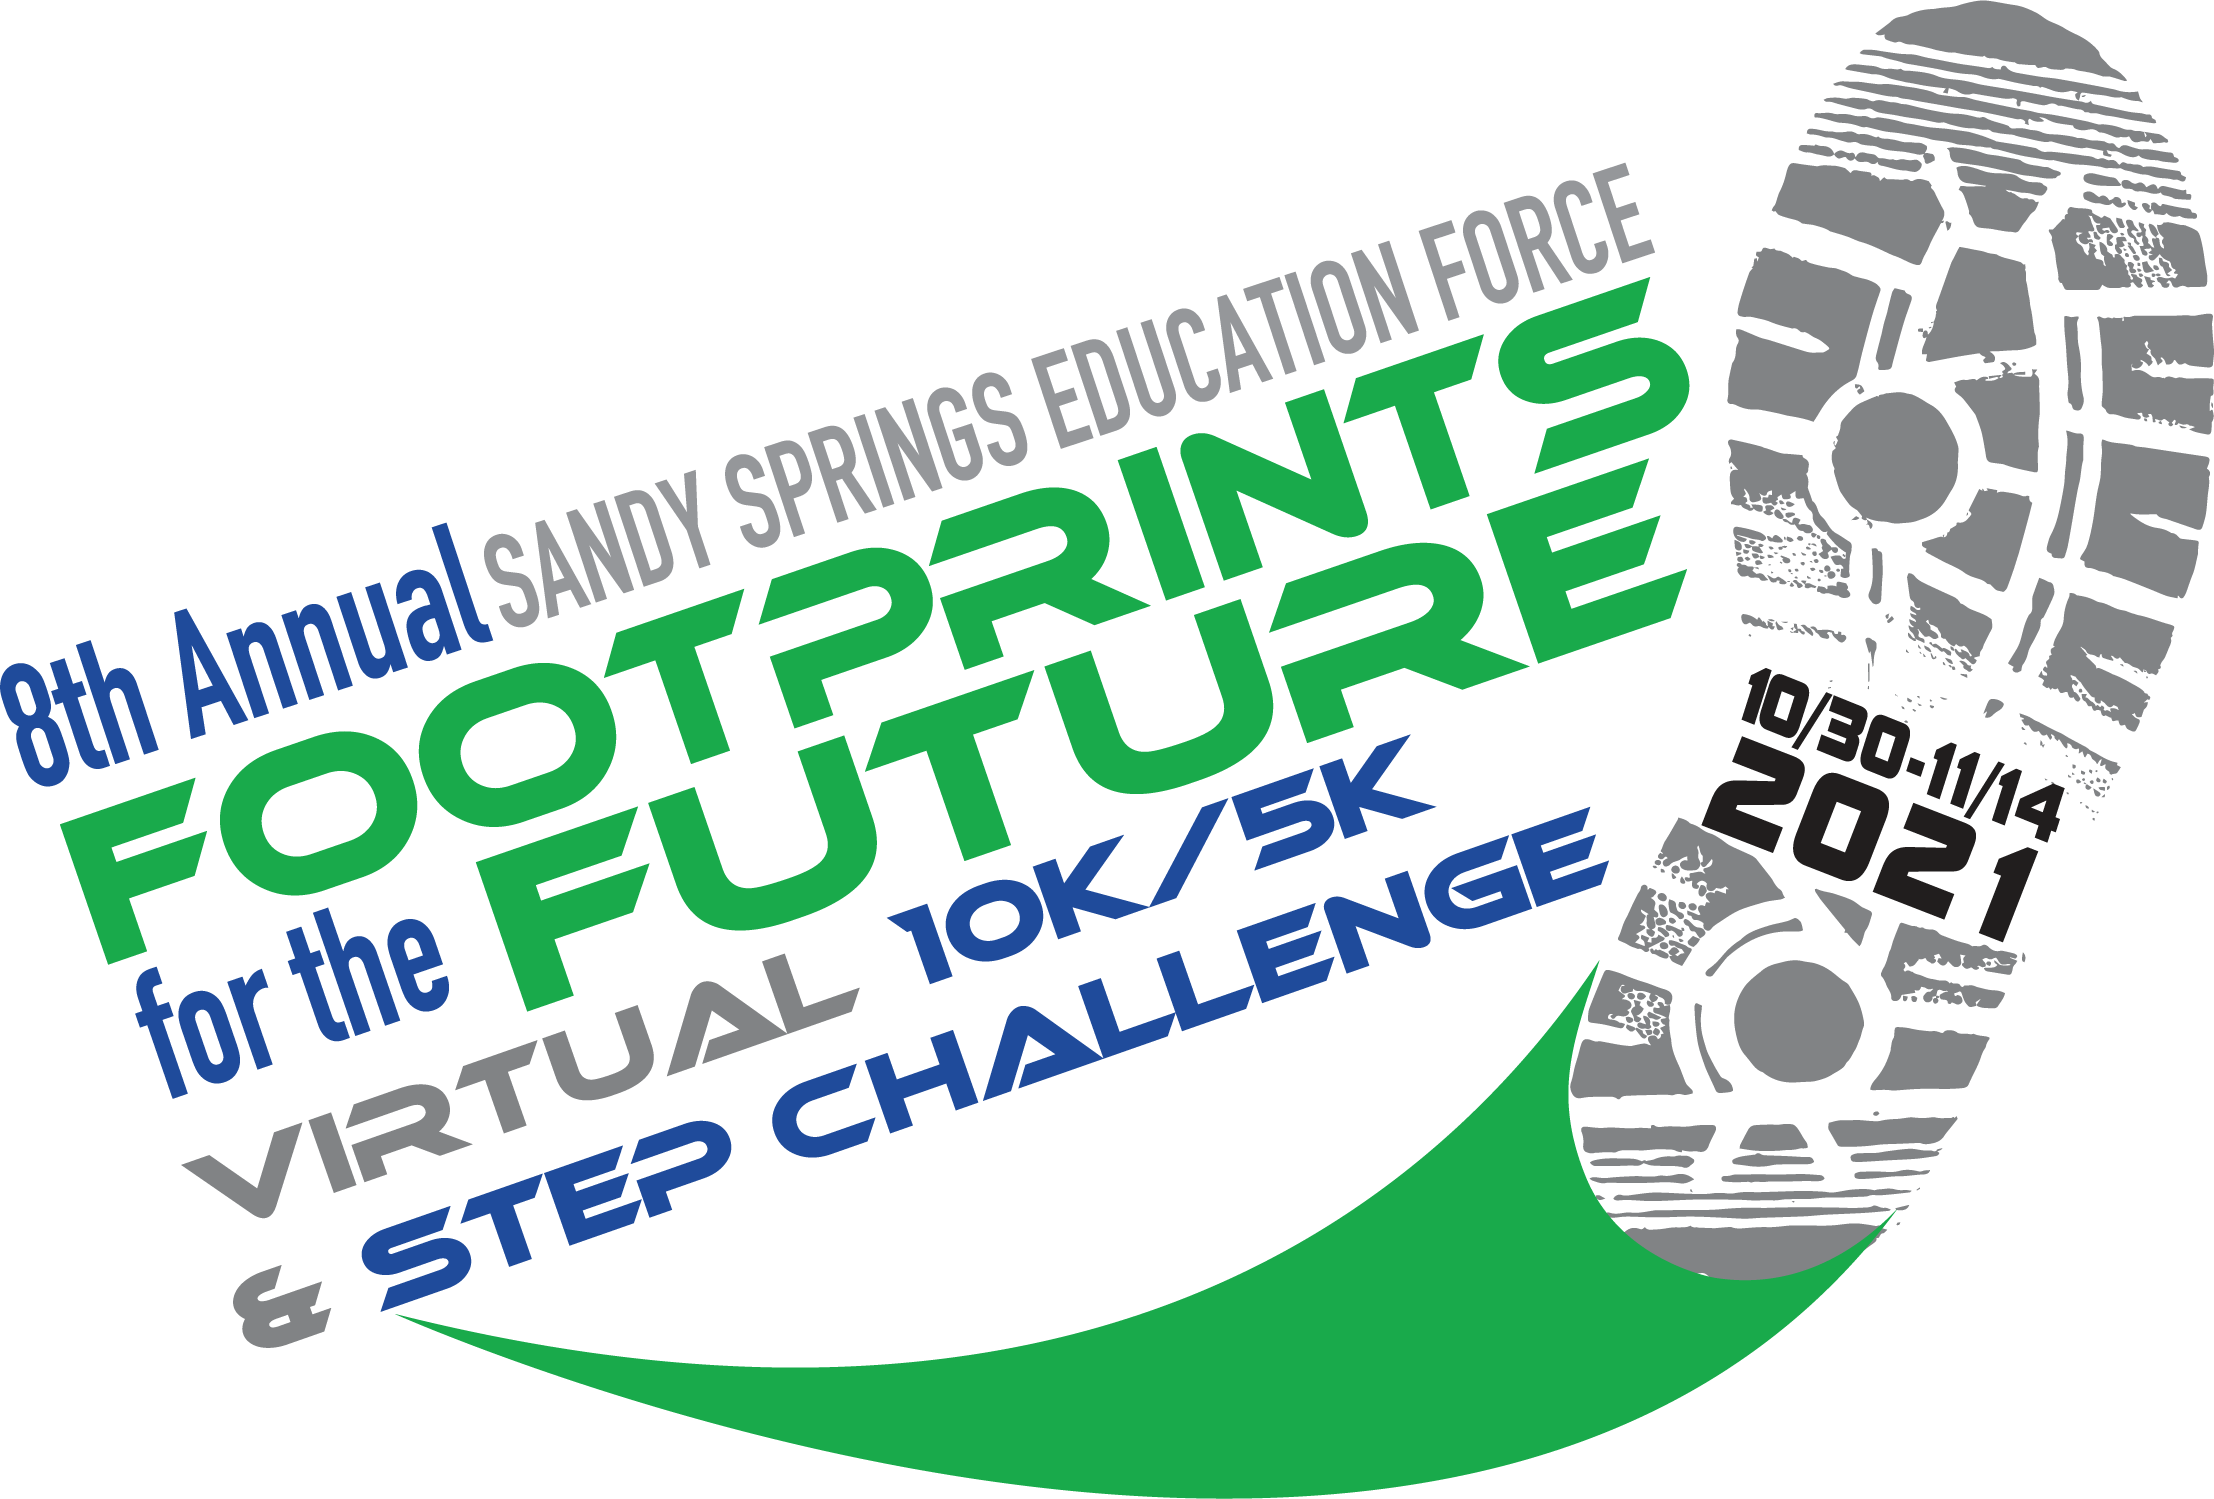 8th Annual VIRTUAL Footprints for the Future Road Race